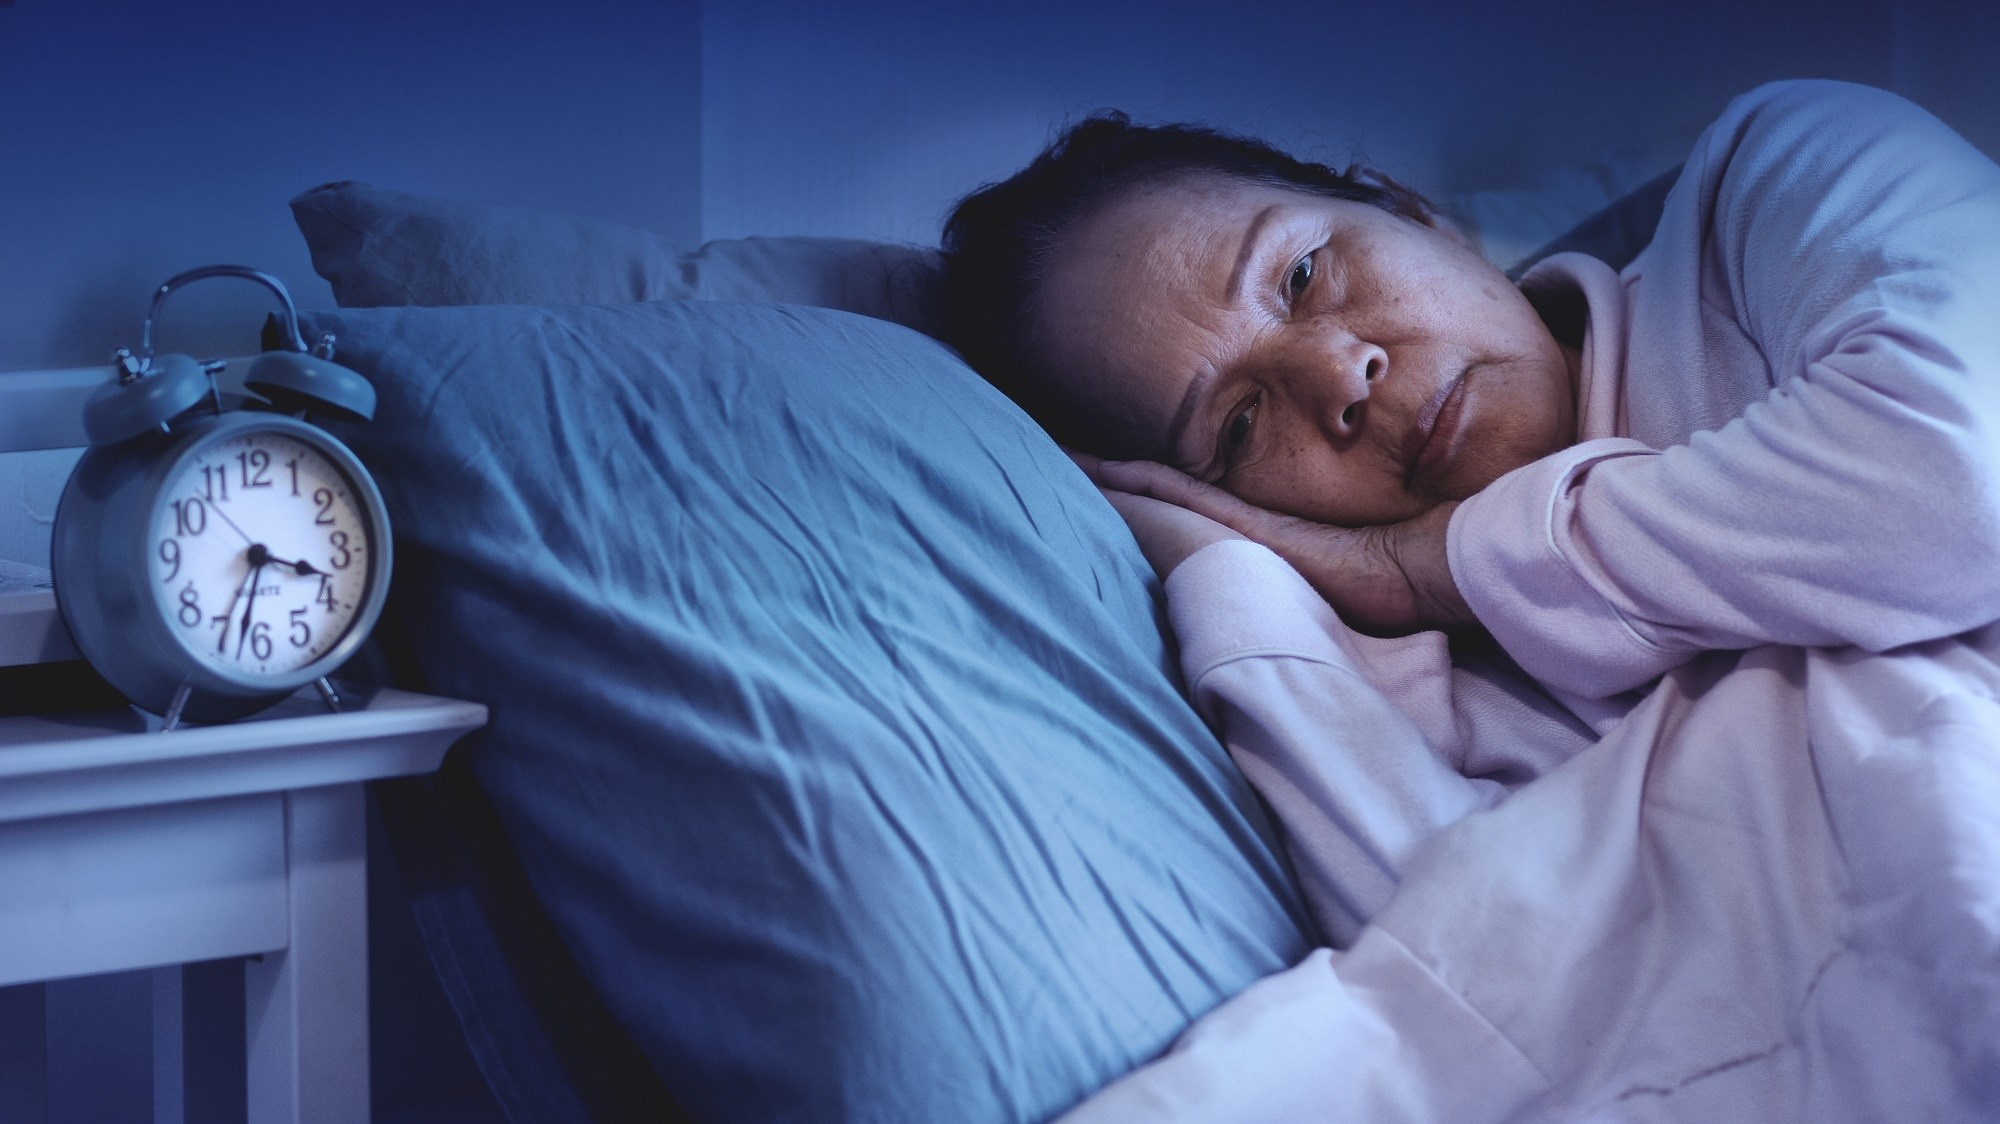 Opioid Use May Be Associated With Difficulty Falling Asleep in Adults With Mild Chronic Pain